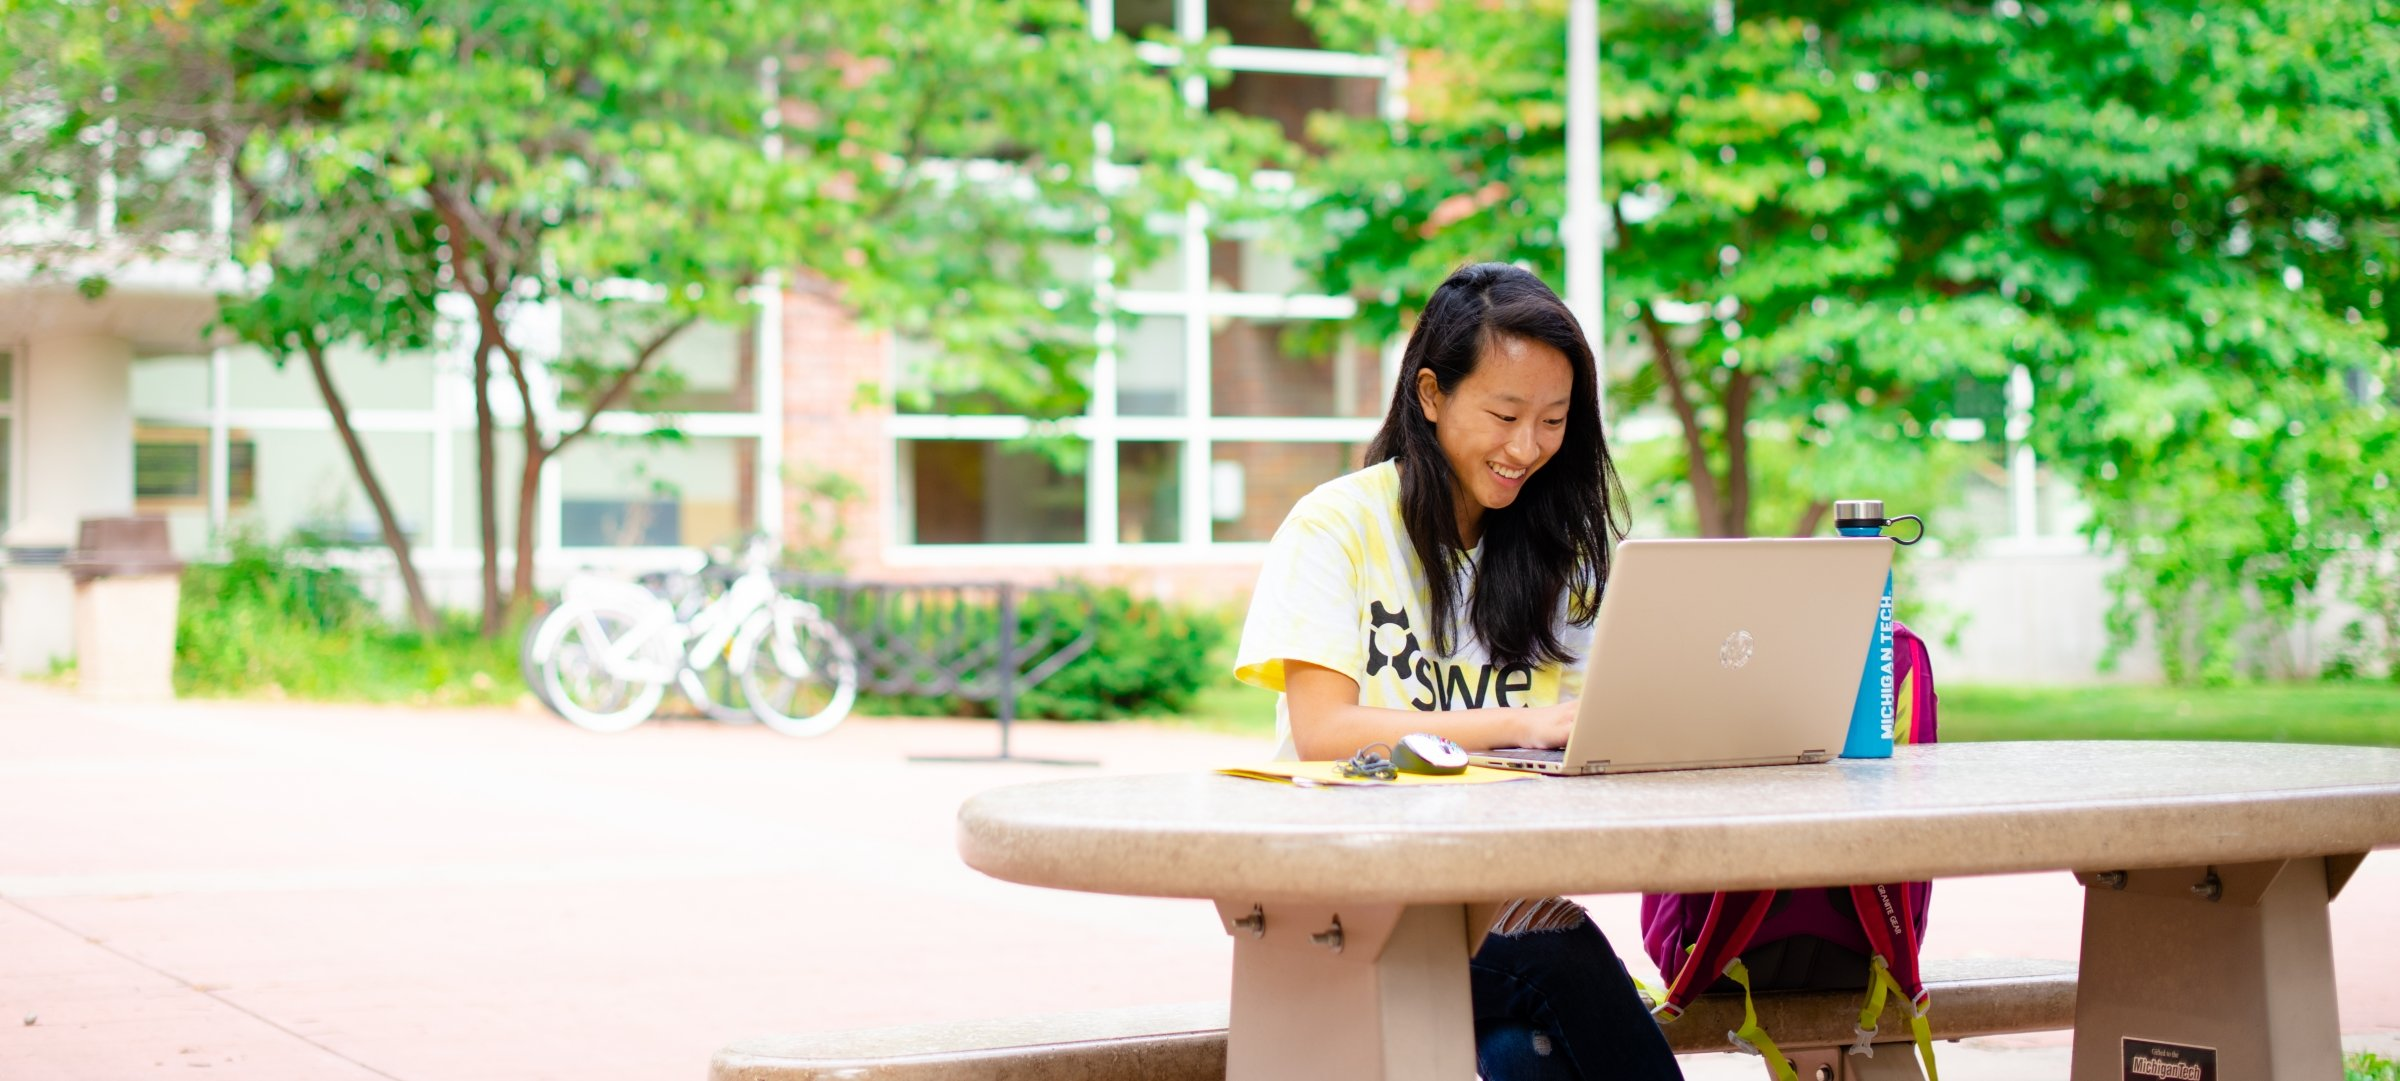 Michigan Tech student studies with a laptop outside on a picnic table.